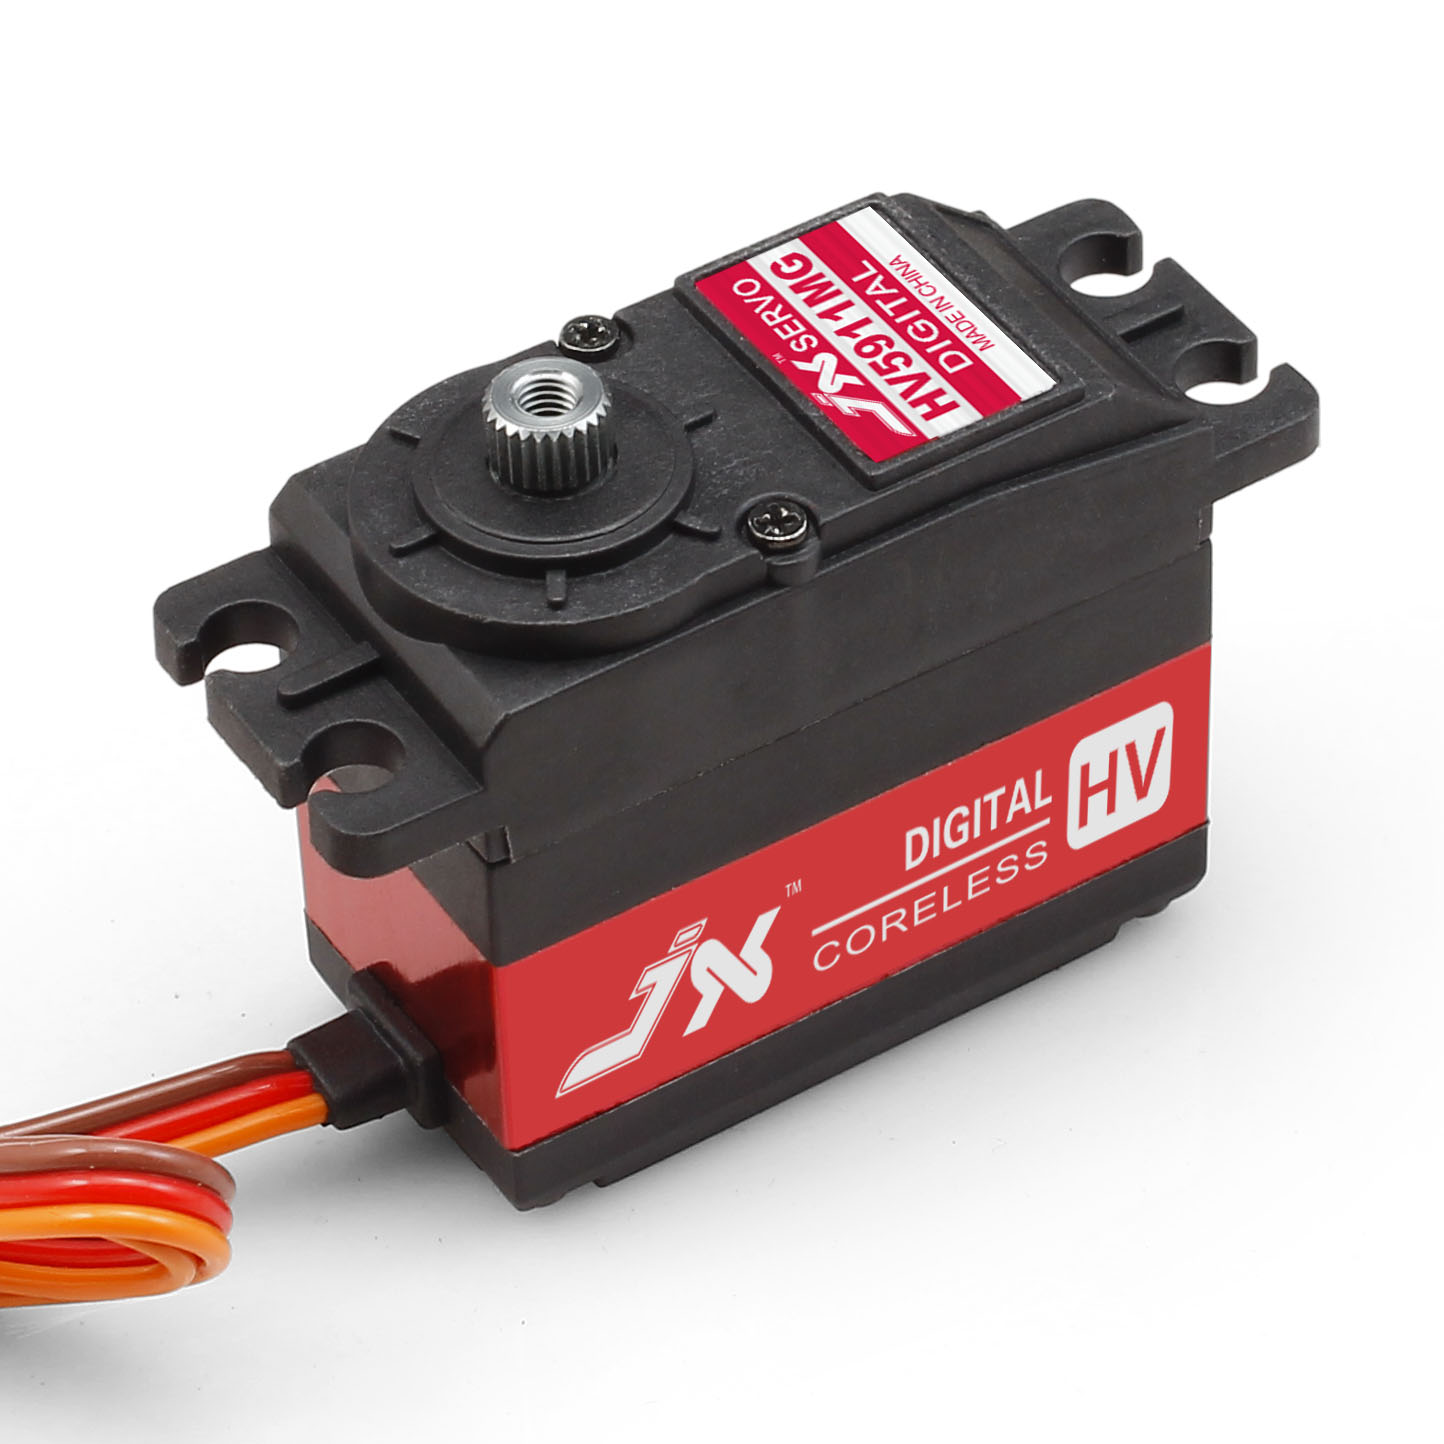 Superior Hobby Jx PDI-HV5911MG 11KG High Precision Metal Gear High Voltage Digital Coreless Standard Servo superior hobby jx bls hv6105mg 5kg high precision metal gear high voltage brushless digital gyro servo